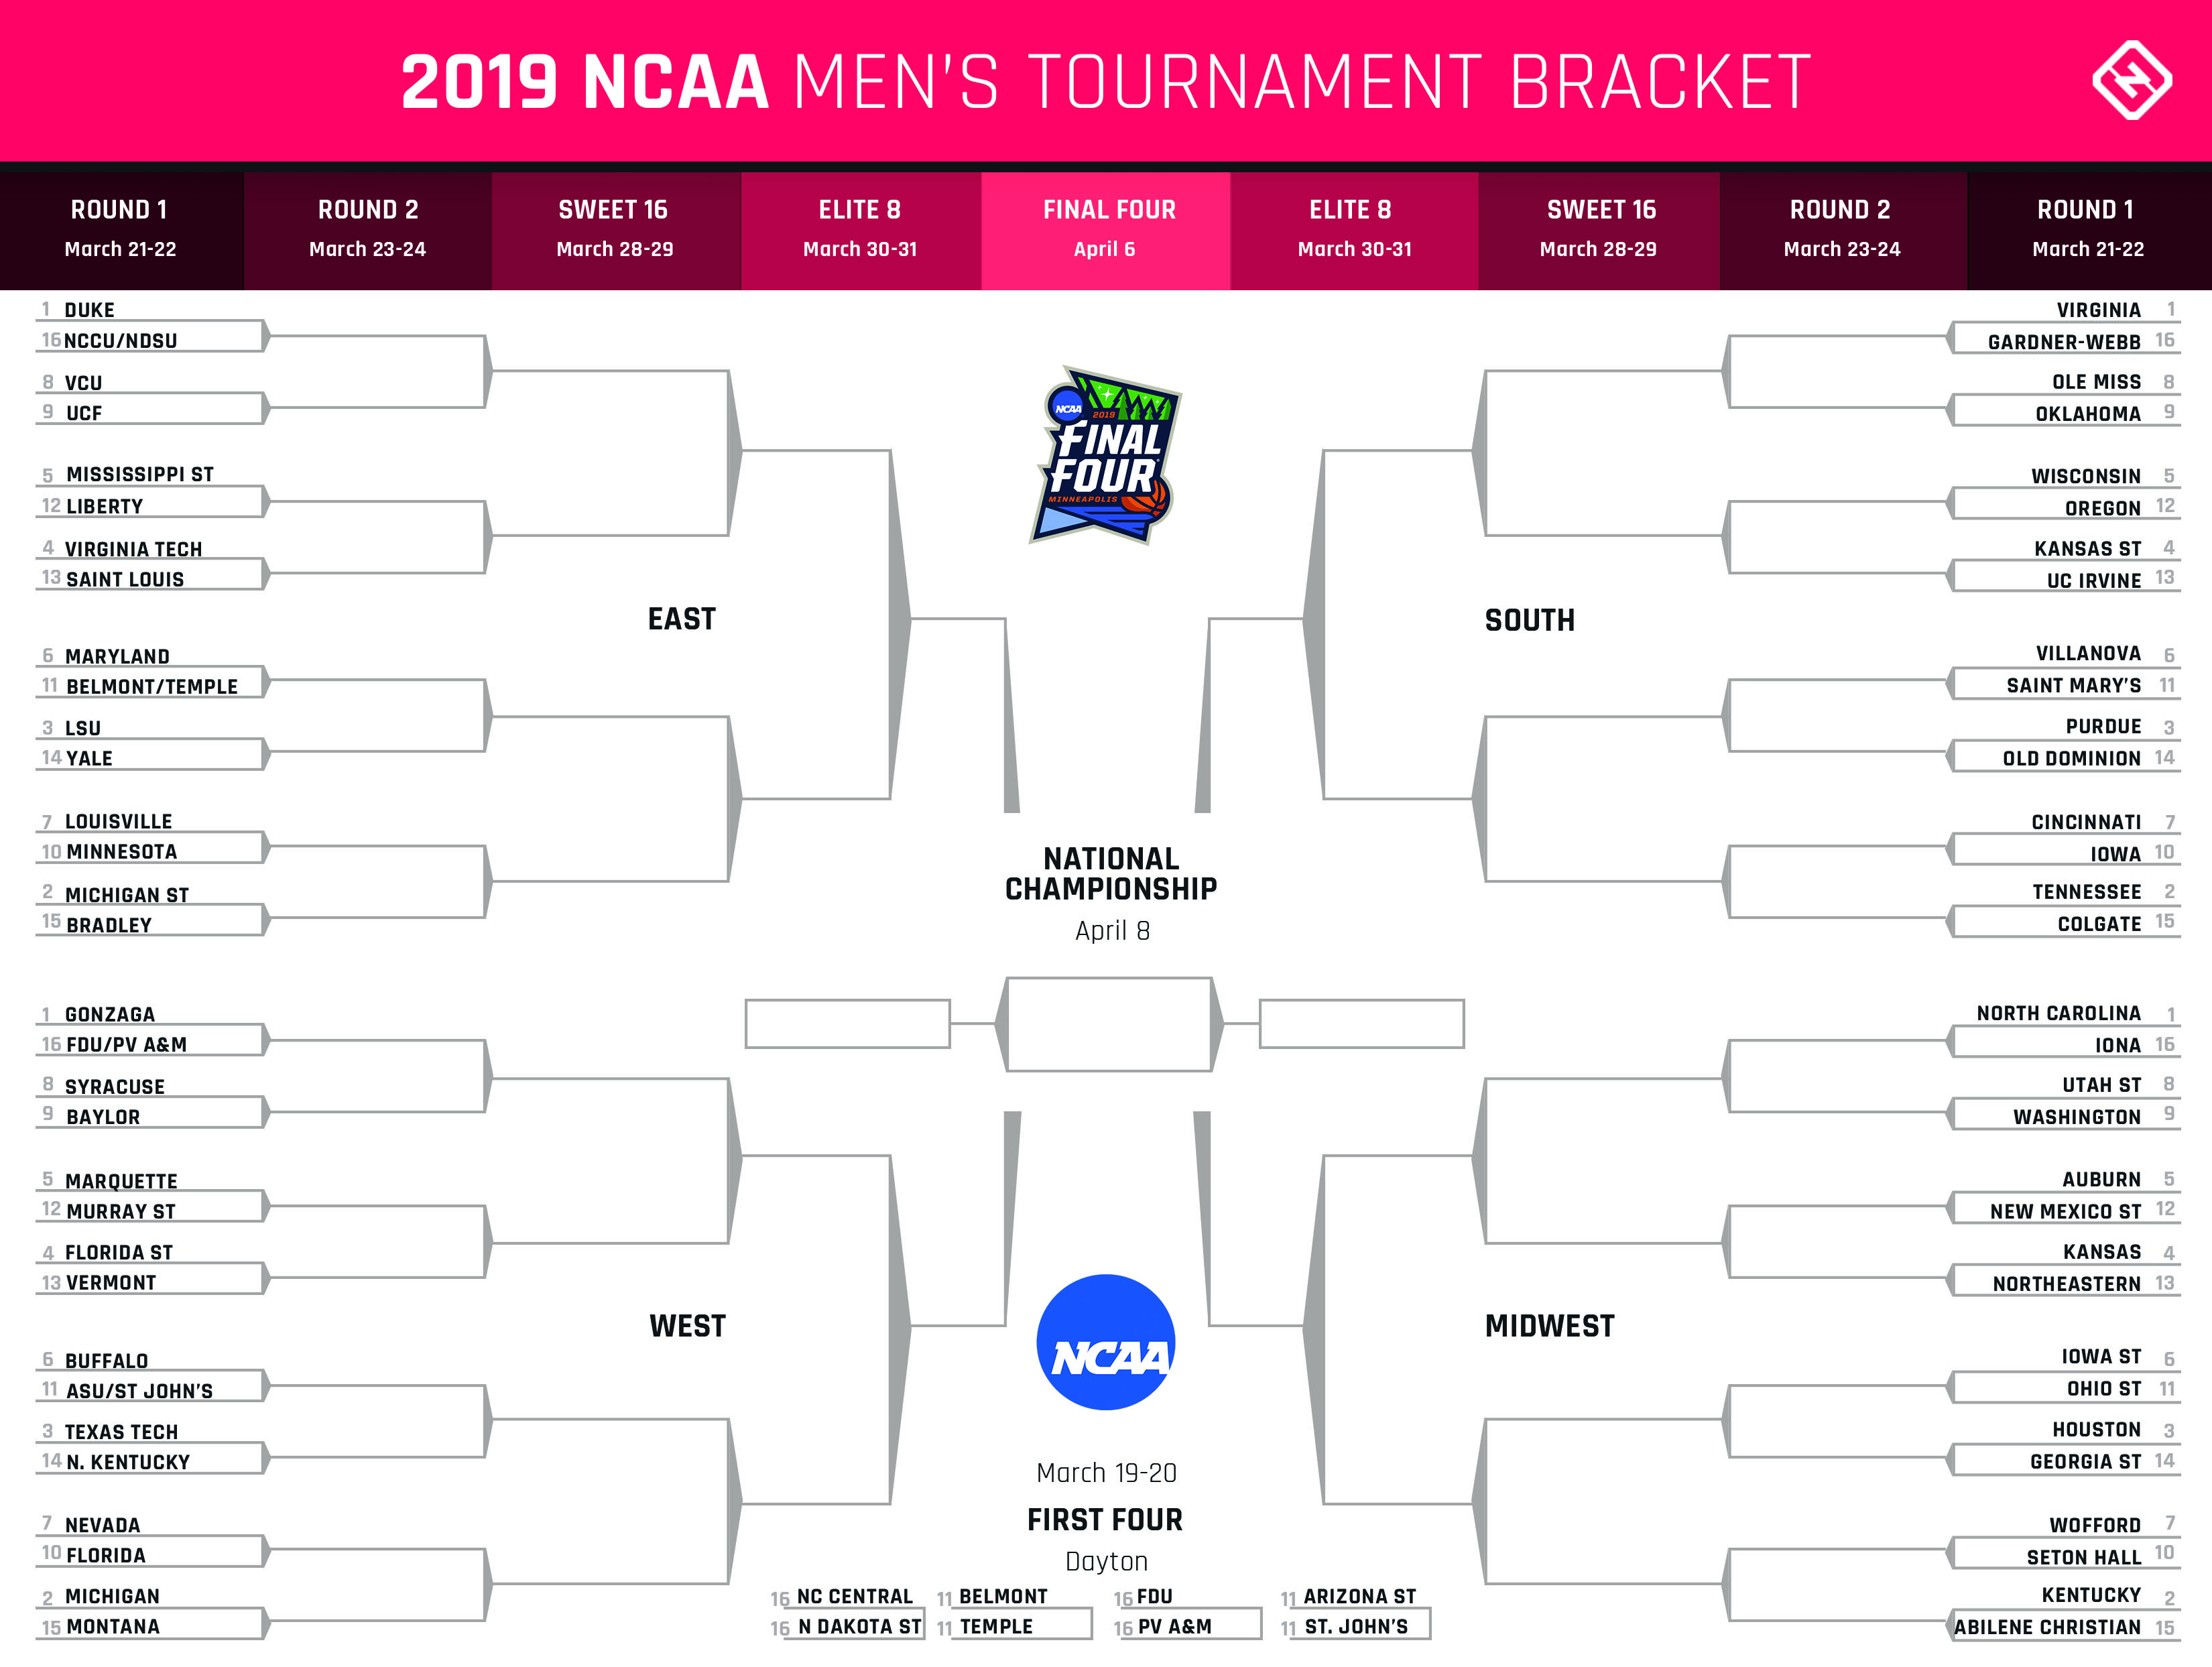 graphic relating to Ku Basketball Schedule Printable referred to as March Insanity routine 2019: Dates, instances, Television channels, reside